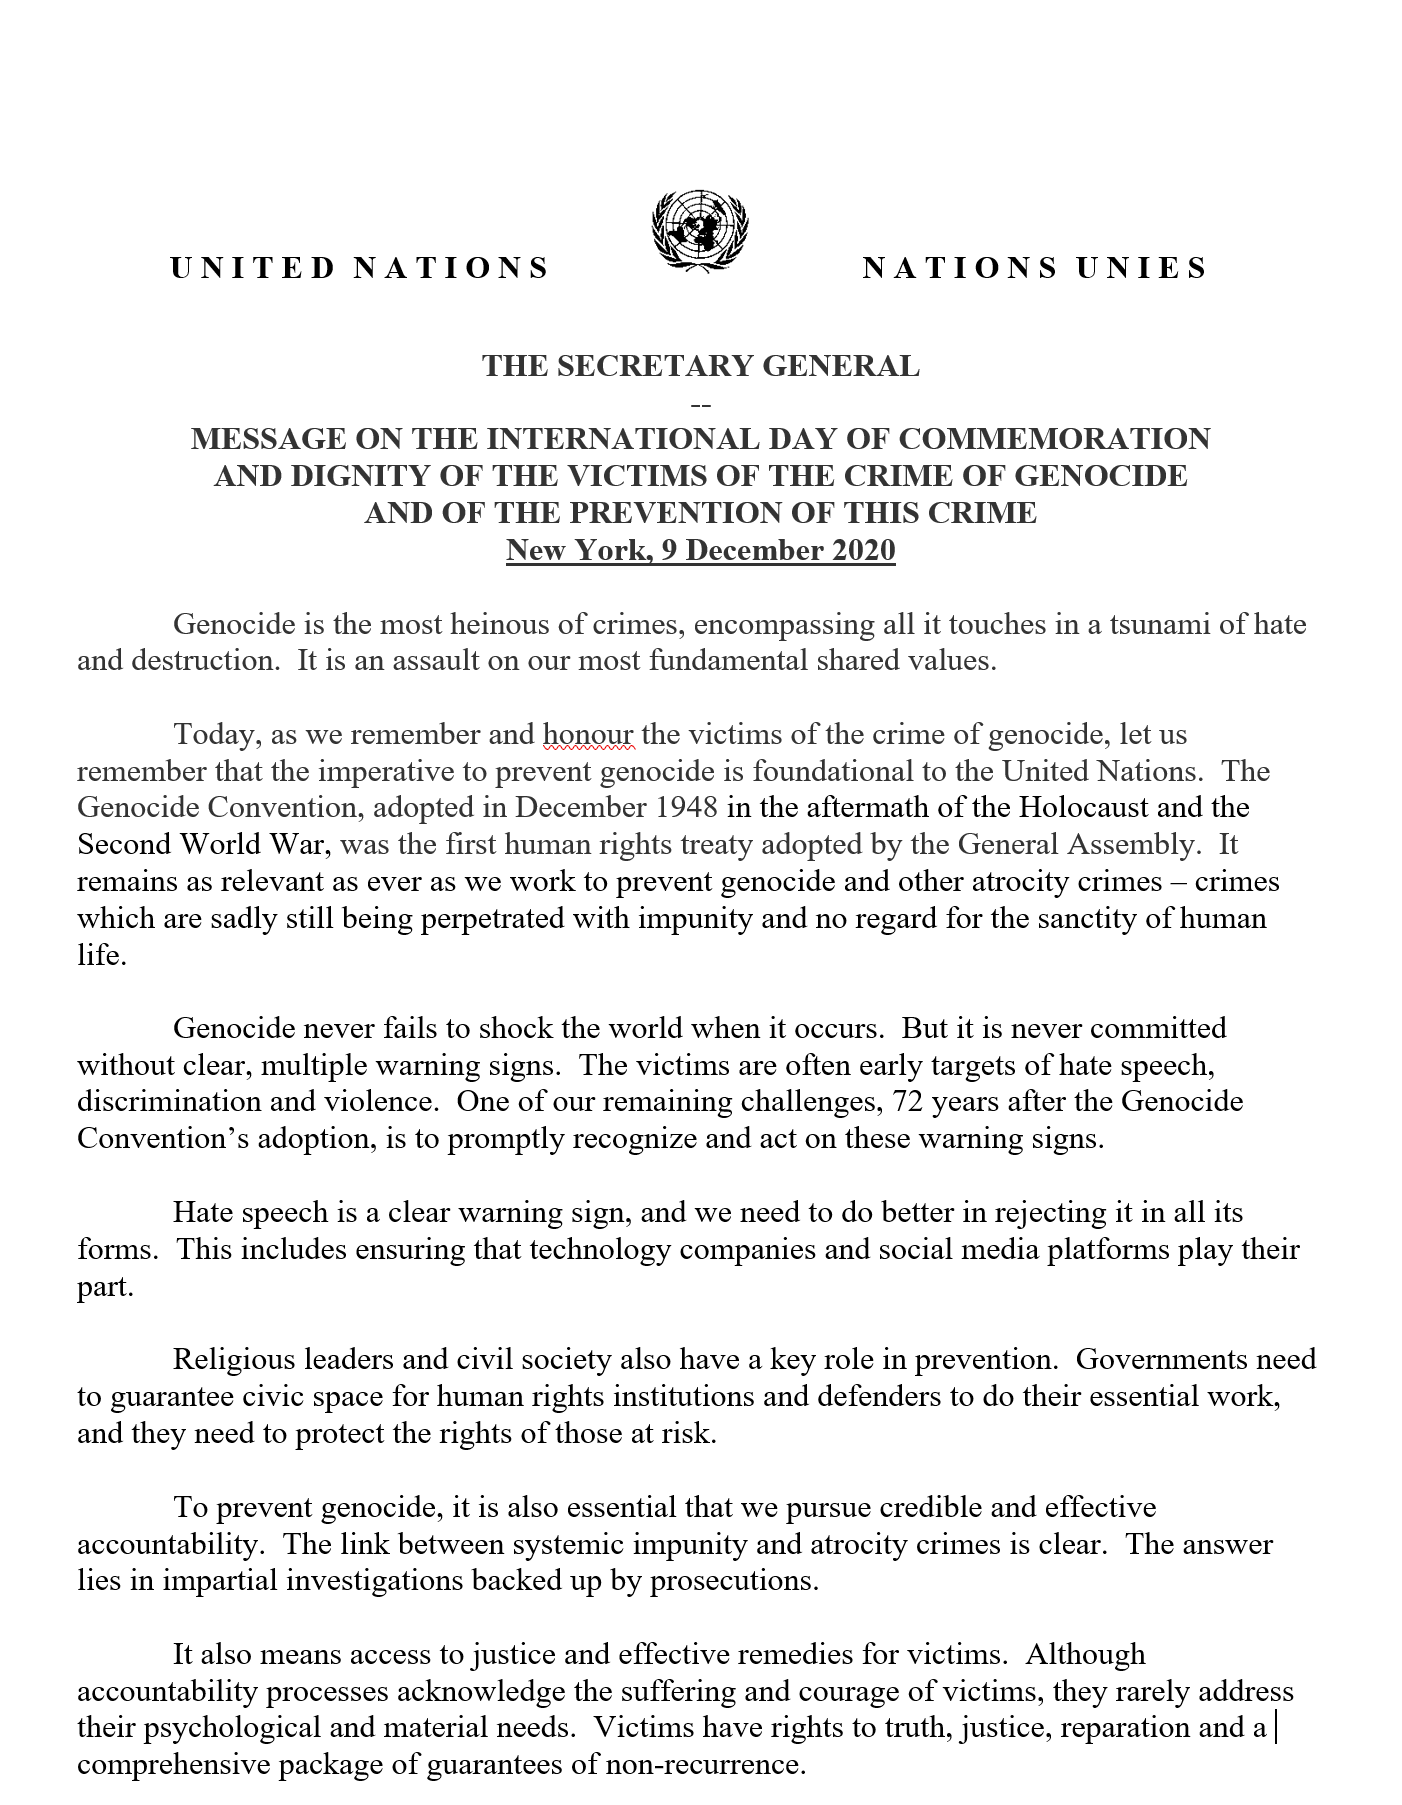 MESSAGE ON THE INTERNATIONAL DAY OF COMMEMORATION AND DIGNITY OF THE VICTIMS OF THE CRIME OF GENOCIDE